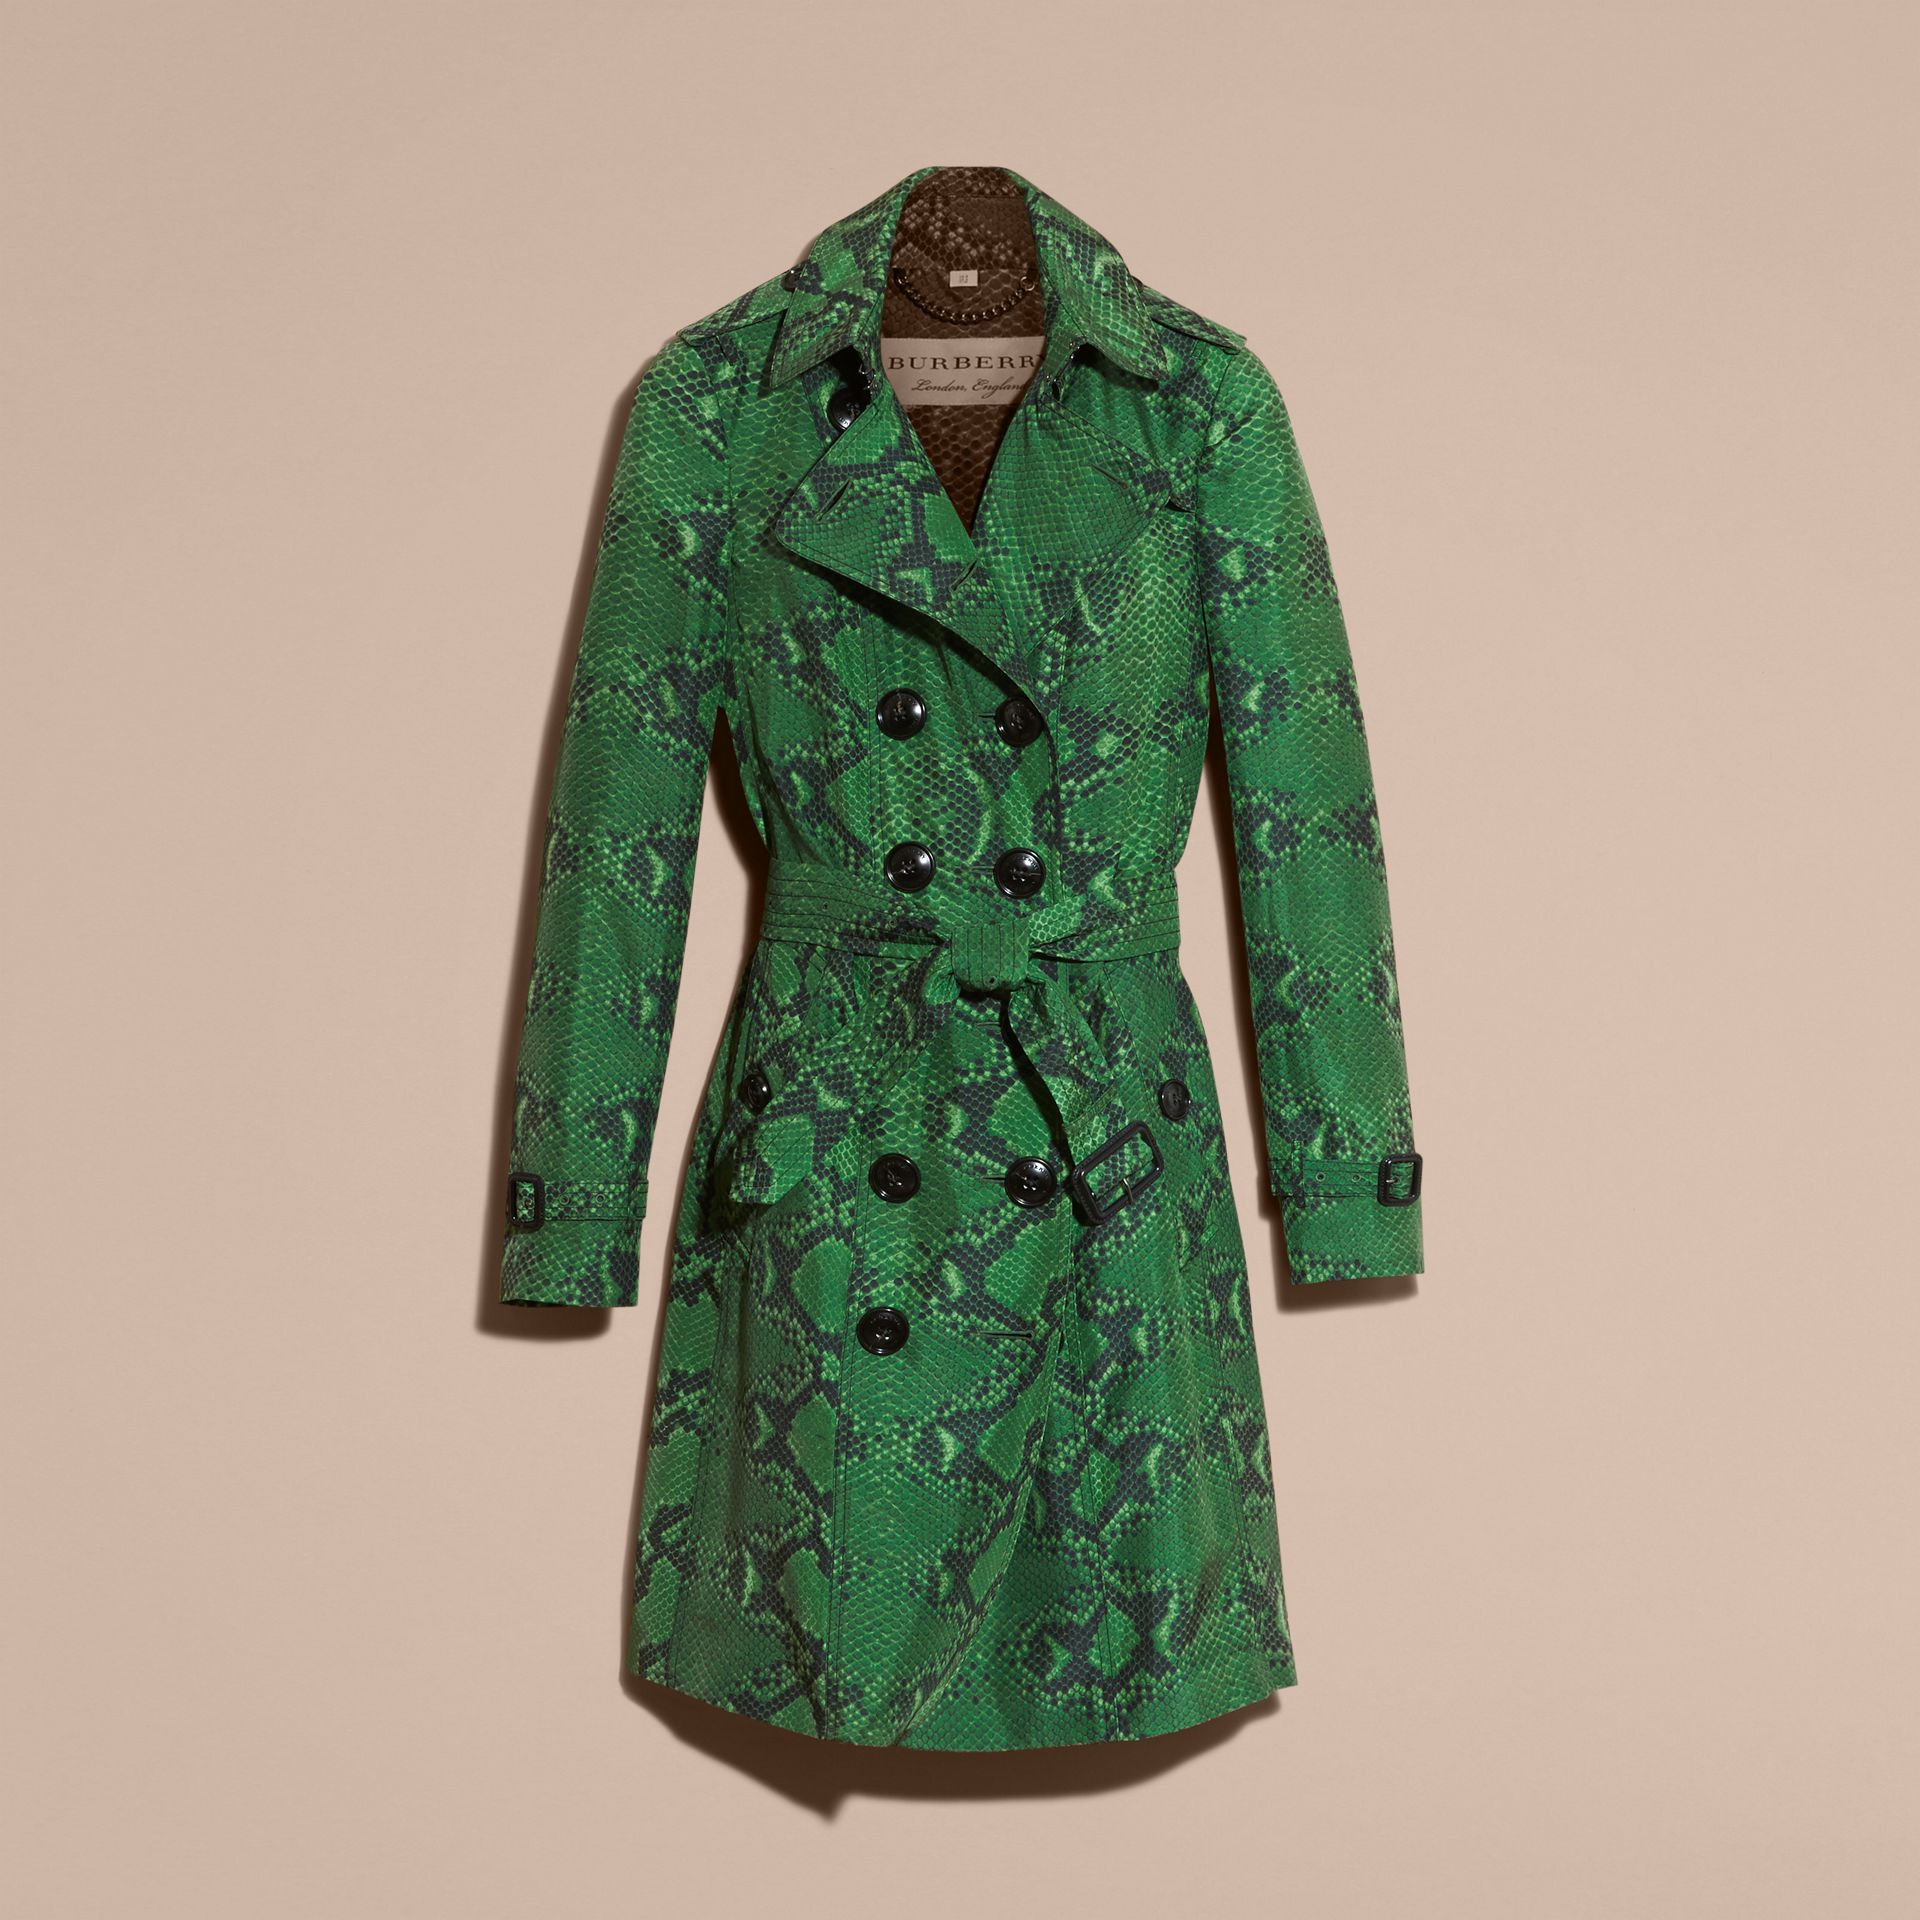 Verde brillante Trench coat in seta con stampa pitone Verde Brillante - immagine della galleria 4